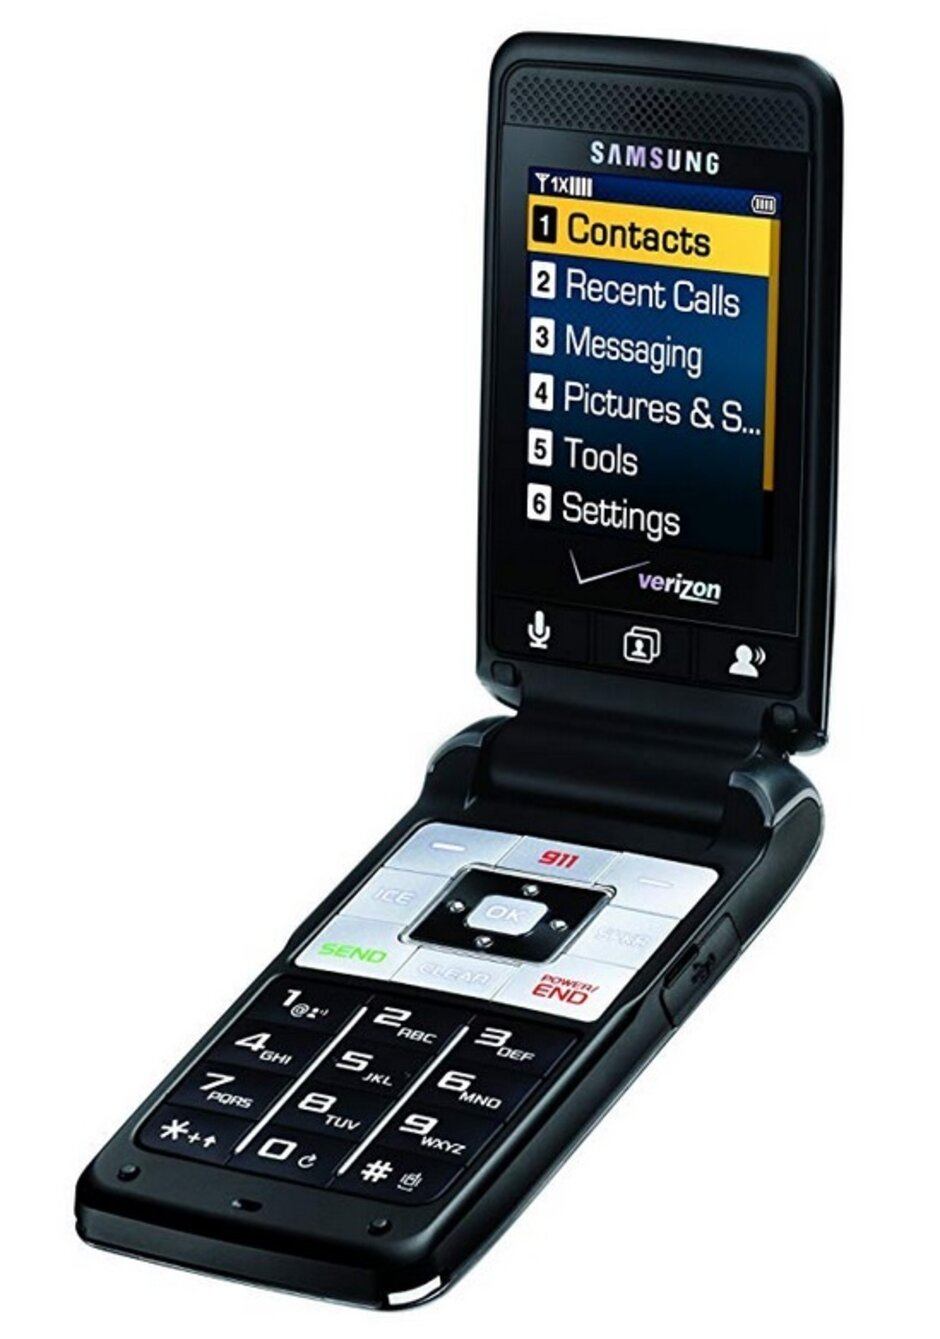 No, this is not the Galaxy Z Flip 2. This is the 2009 Samsung SCH-U320 that Warren Buffet was using until recently - One of Apple's richest and oldest fans finally switches from a flip phone to an iPhone